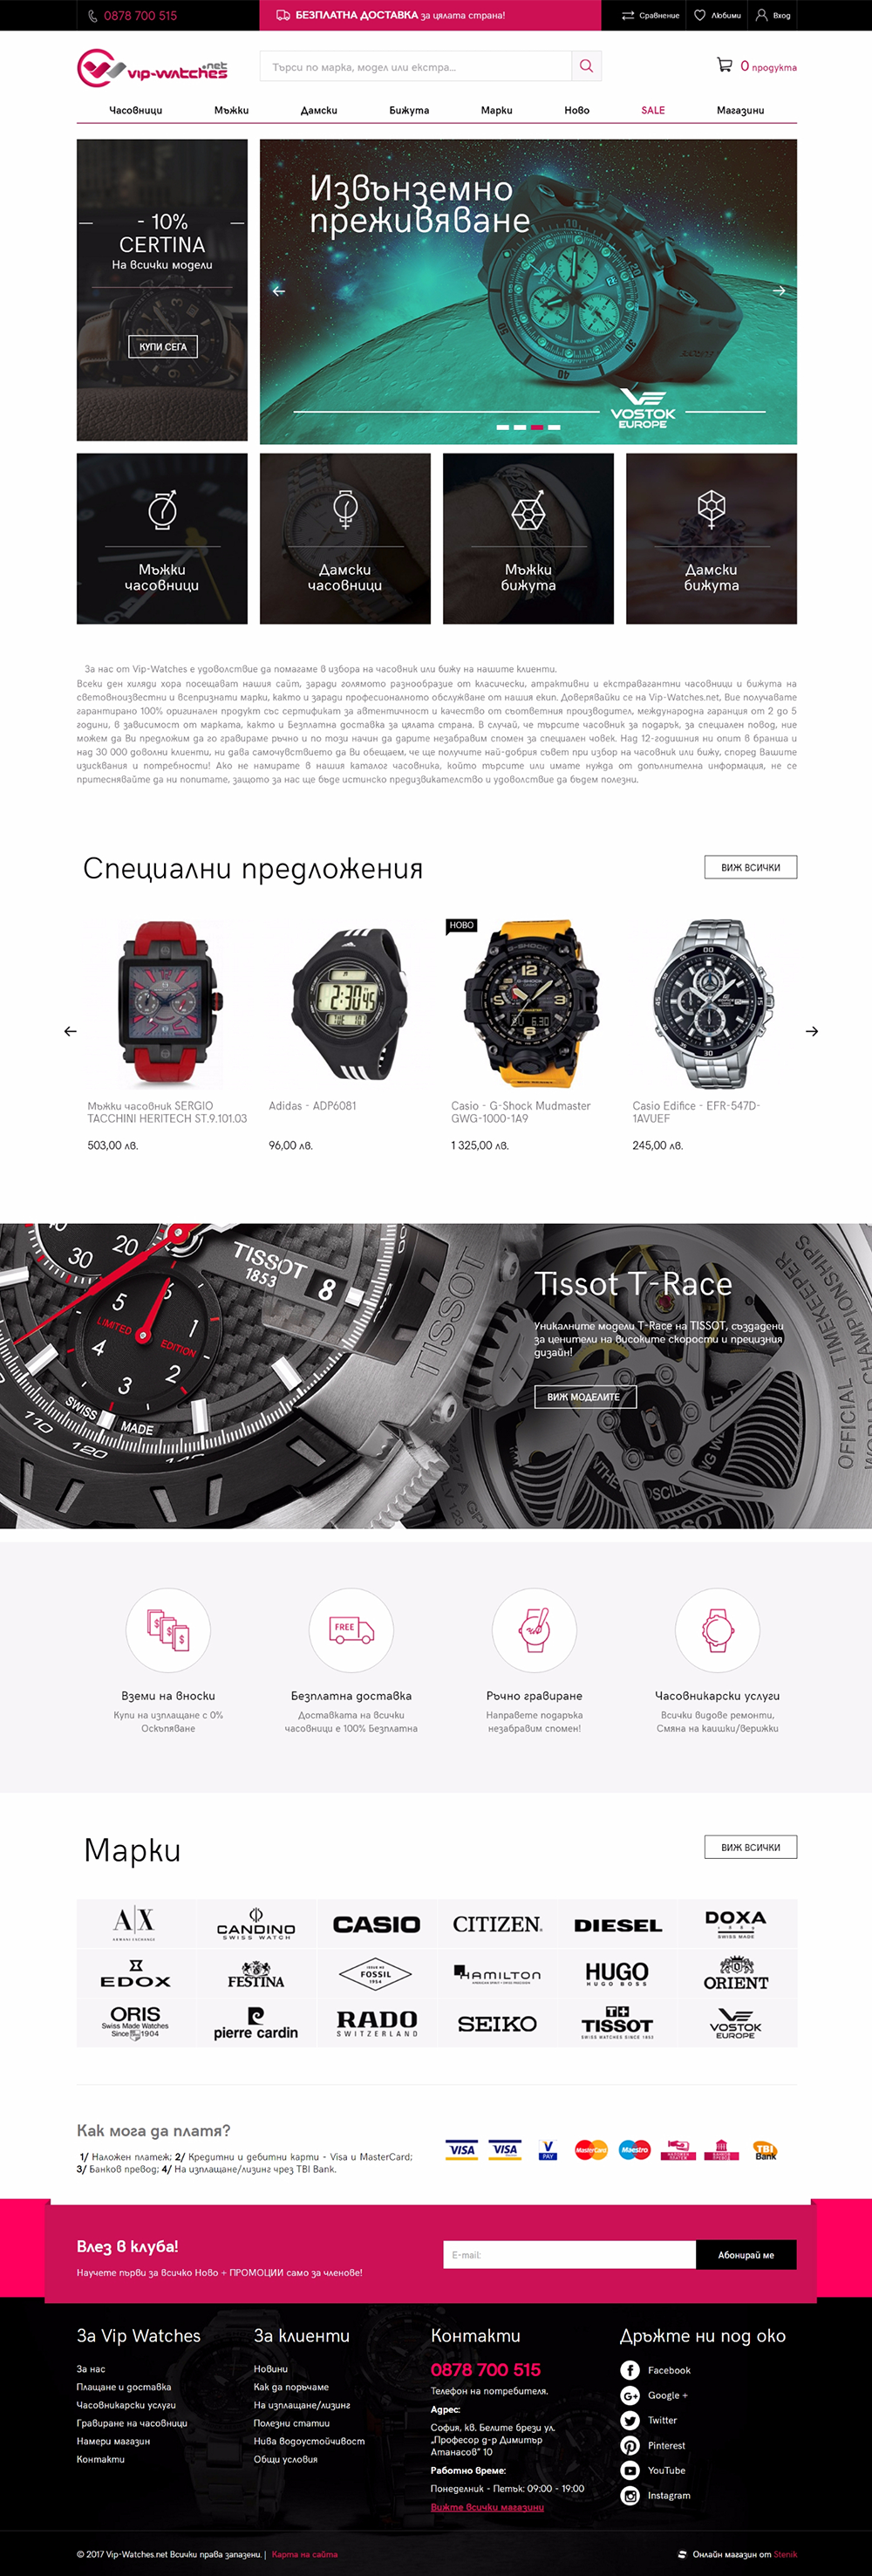 Online Shop for Watches and Jewelry Vip-Watches, Vip-watches - Online Shops, Stenik